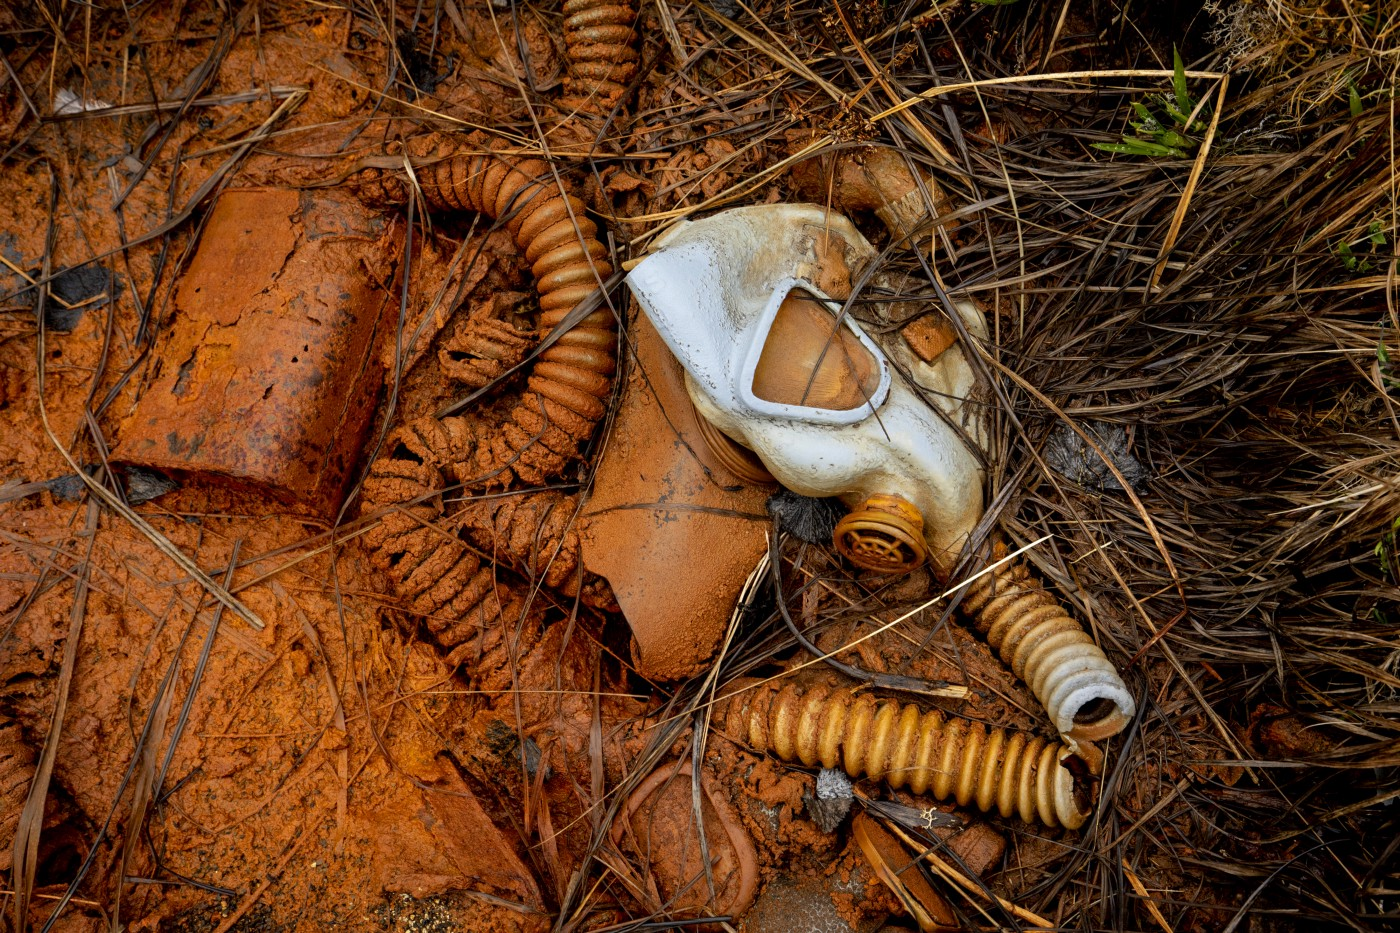 A silver metal face shield lies in rust-colored mud, tubing and other debris is half submerged in the mud, and grass shows at the edges.